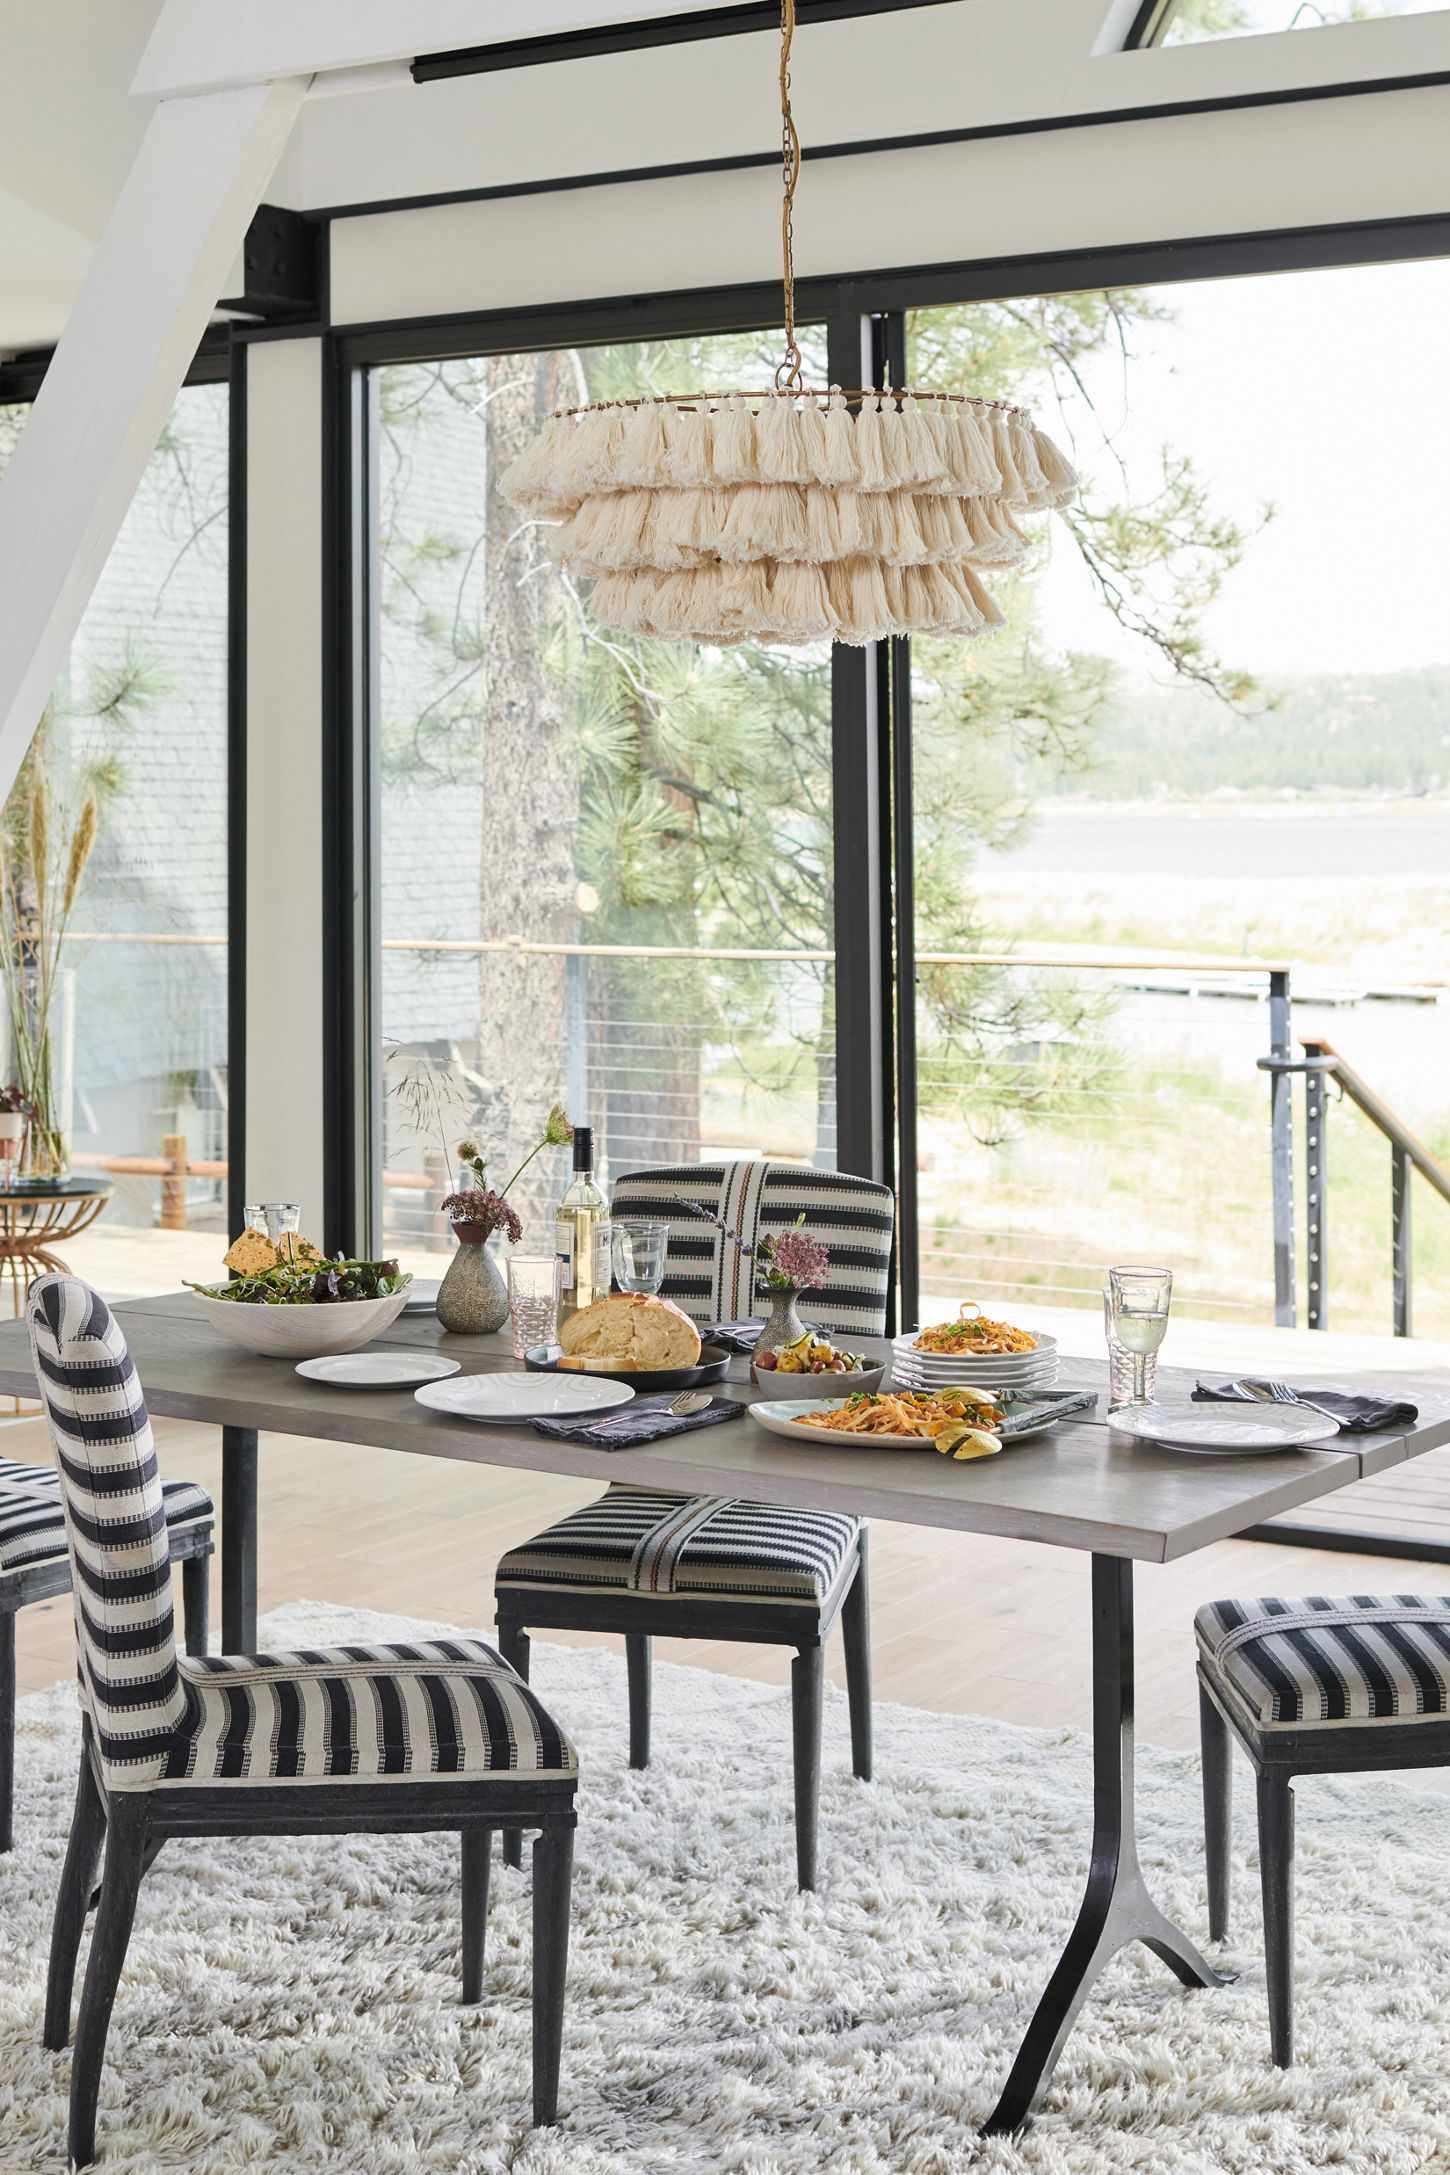 Grassland Stripe Dining Chair In 2020 Dining Chairs Dining Room Chairs Striped Dining Chairs #striped #living #room #chairs